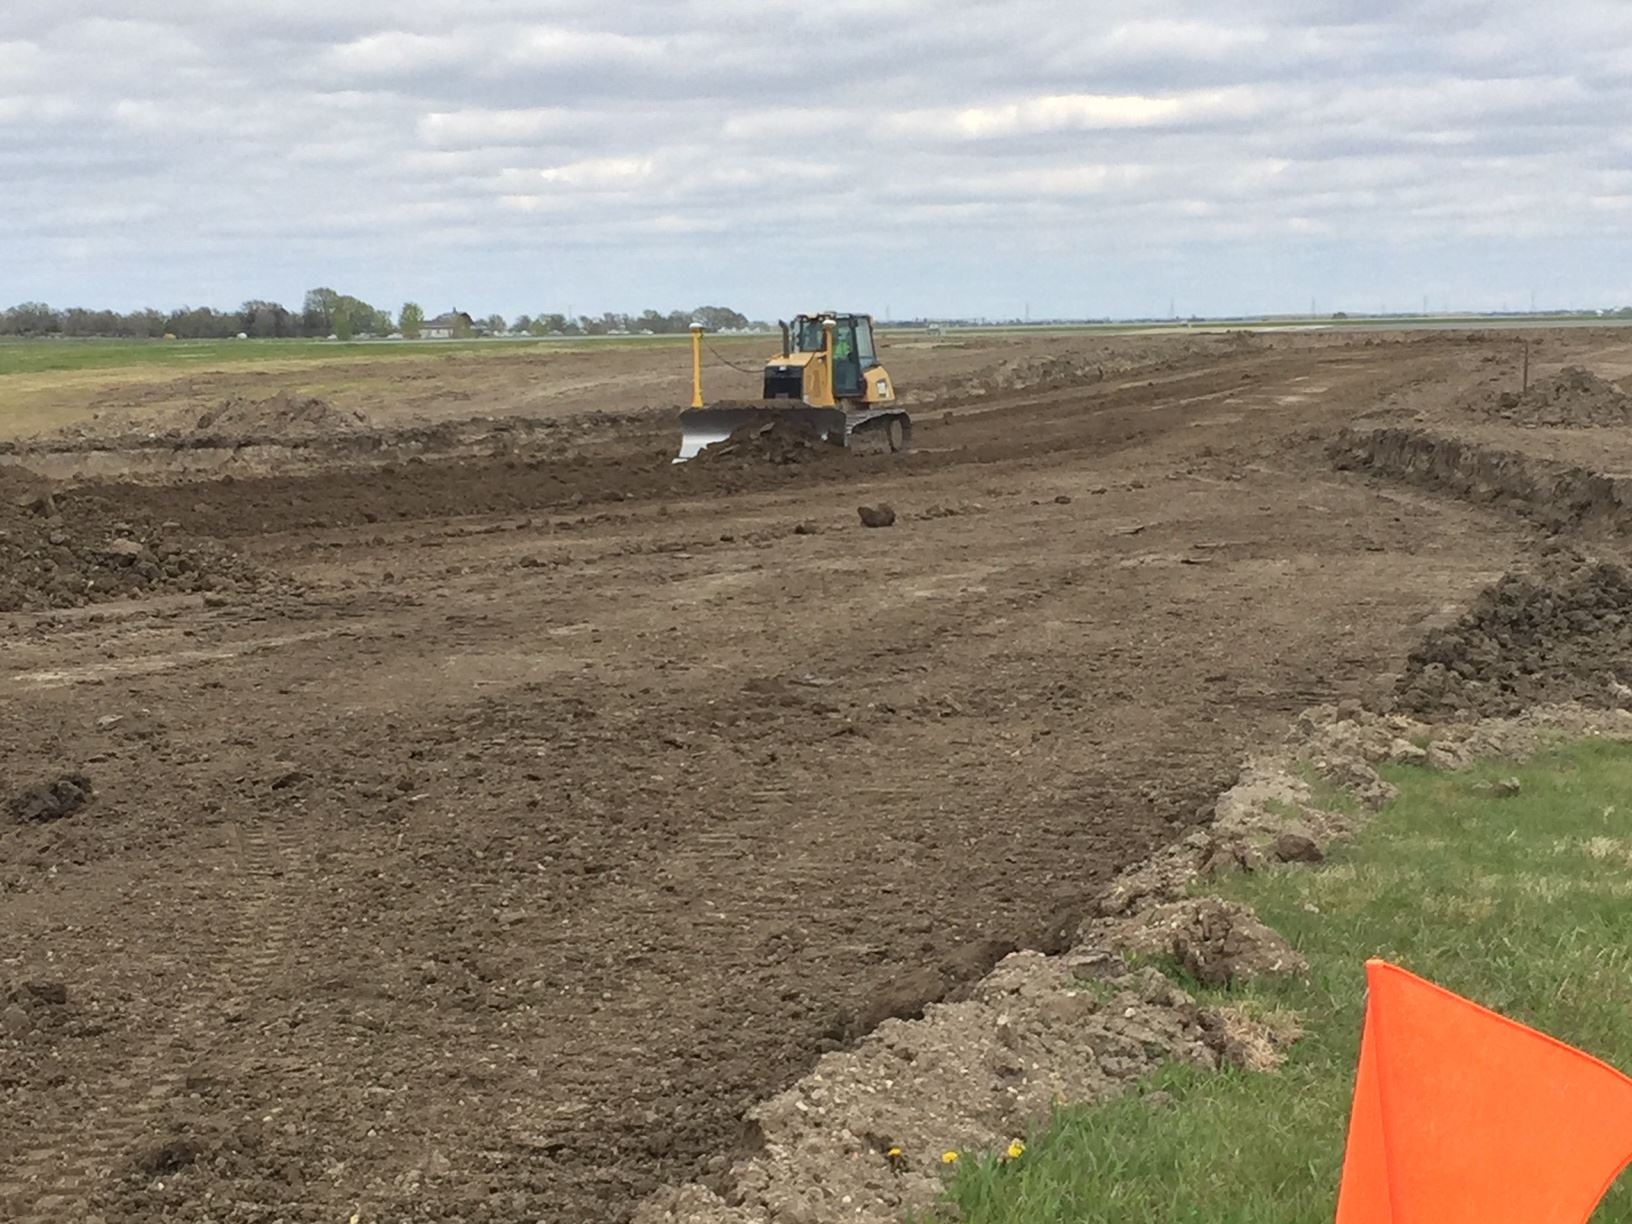 TAXIWAY CONSTRUCTION AT PIERRE REGIONAL AIRPORT